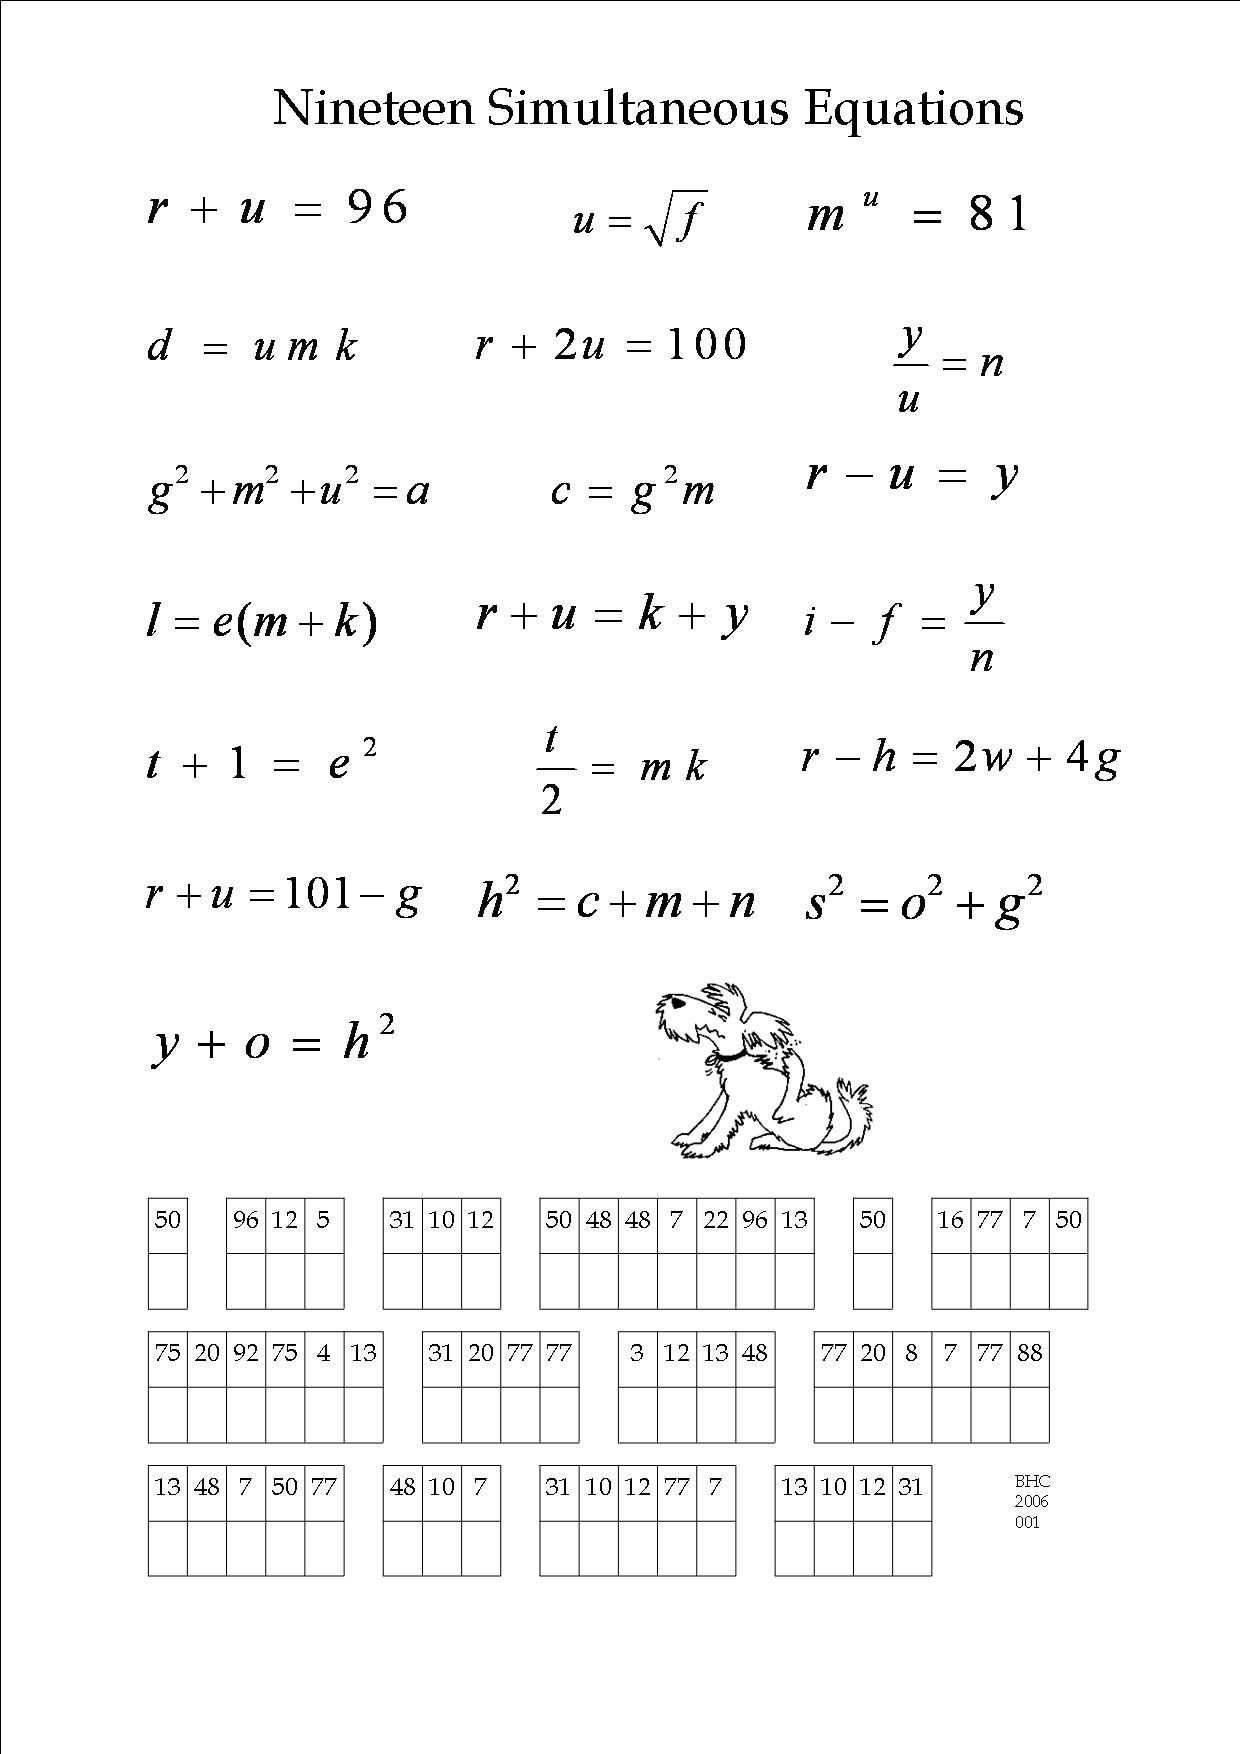 It is an image of Adorable Algebra Printable Worksheets